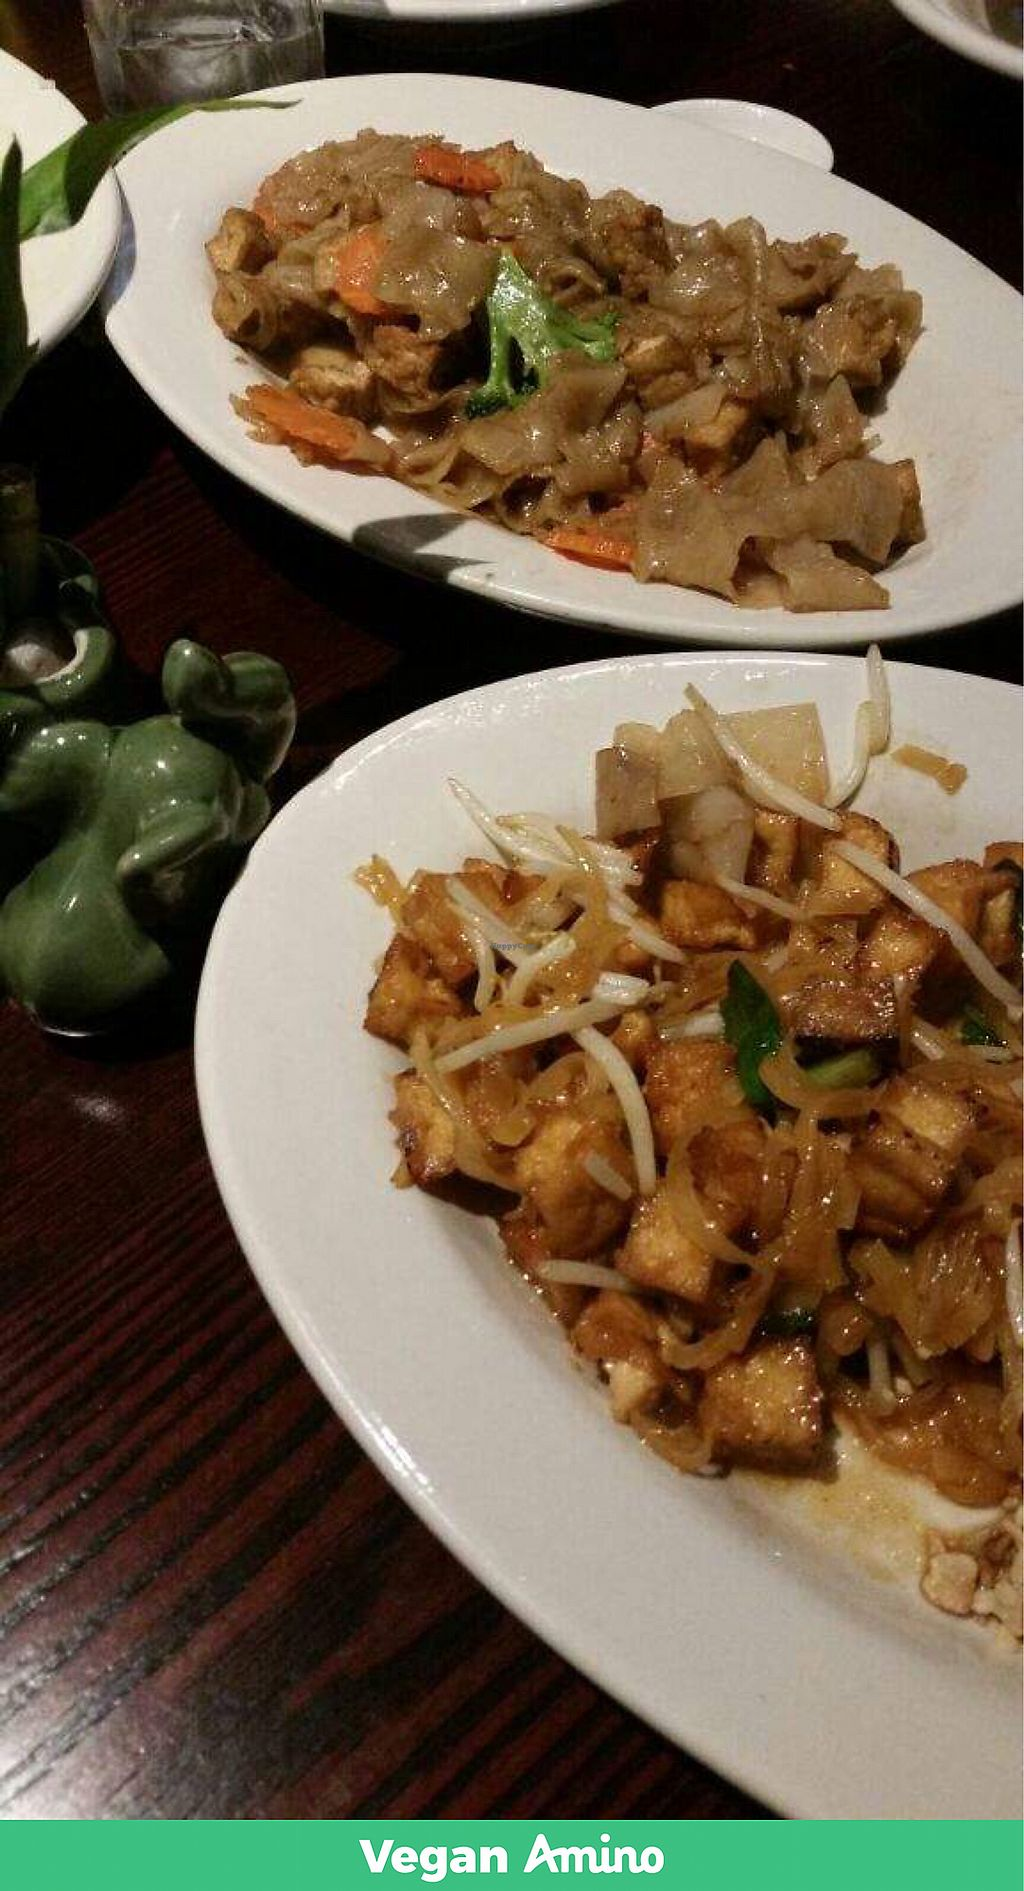 "Photo of Sam's Bann Thai  by <a href=""/members/profile/LoneCrone"">LoneCrone</a> <br/>Pad Thai and Pad Se Ew <br/> July 30, 2017  - <a href='/contact/abuse/image/89253/286481'>Report</a>"